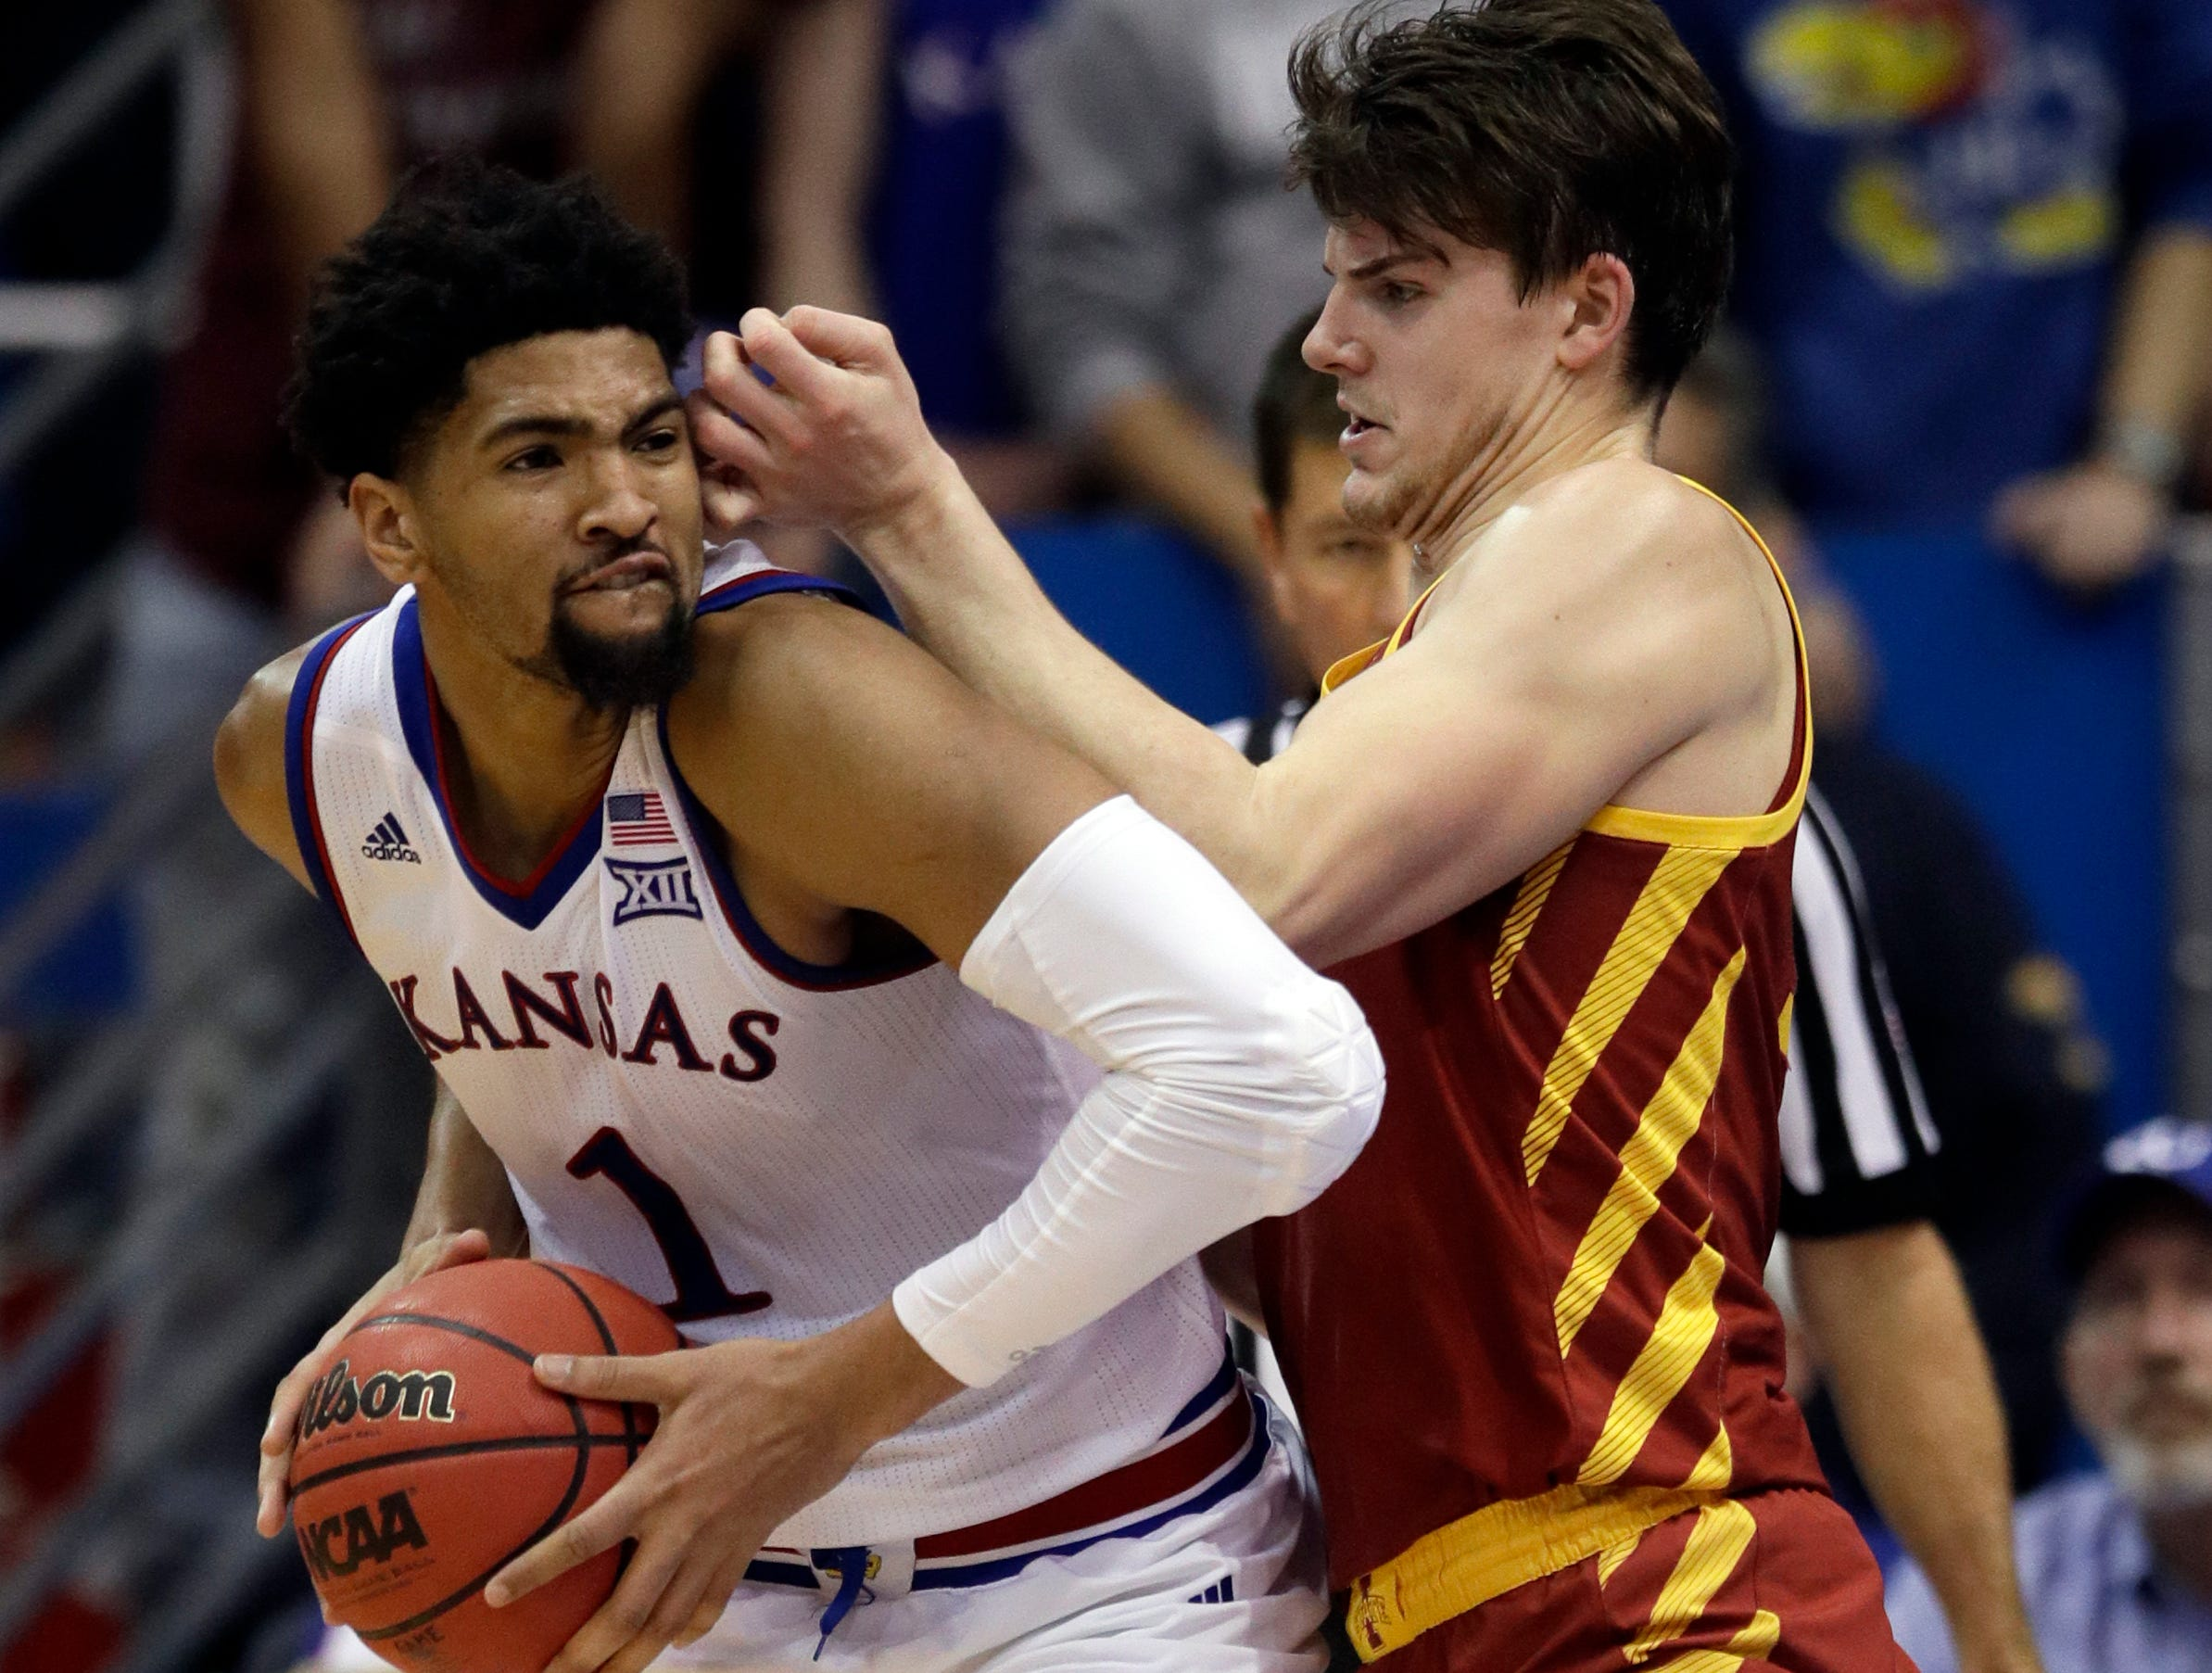 Kansas forward Dedric Lawson (1) drives on Iowa State forward Michael Jacobson (12) during the second half of an NCAA college basketball game in Lawrence, Kan., Monday, Jan. 21, 2019. Kansas defeated Iowa State 80-76.